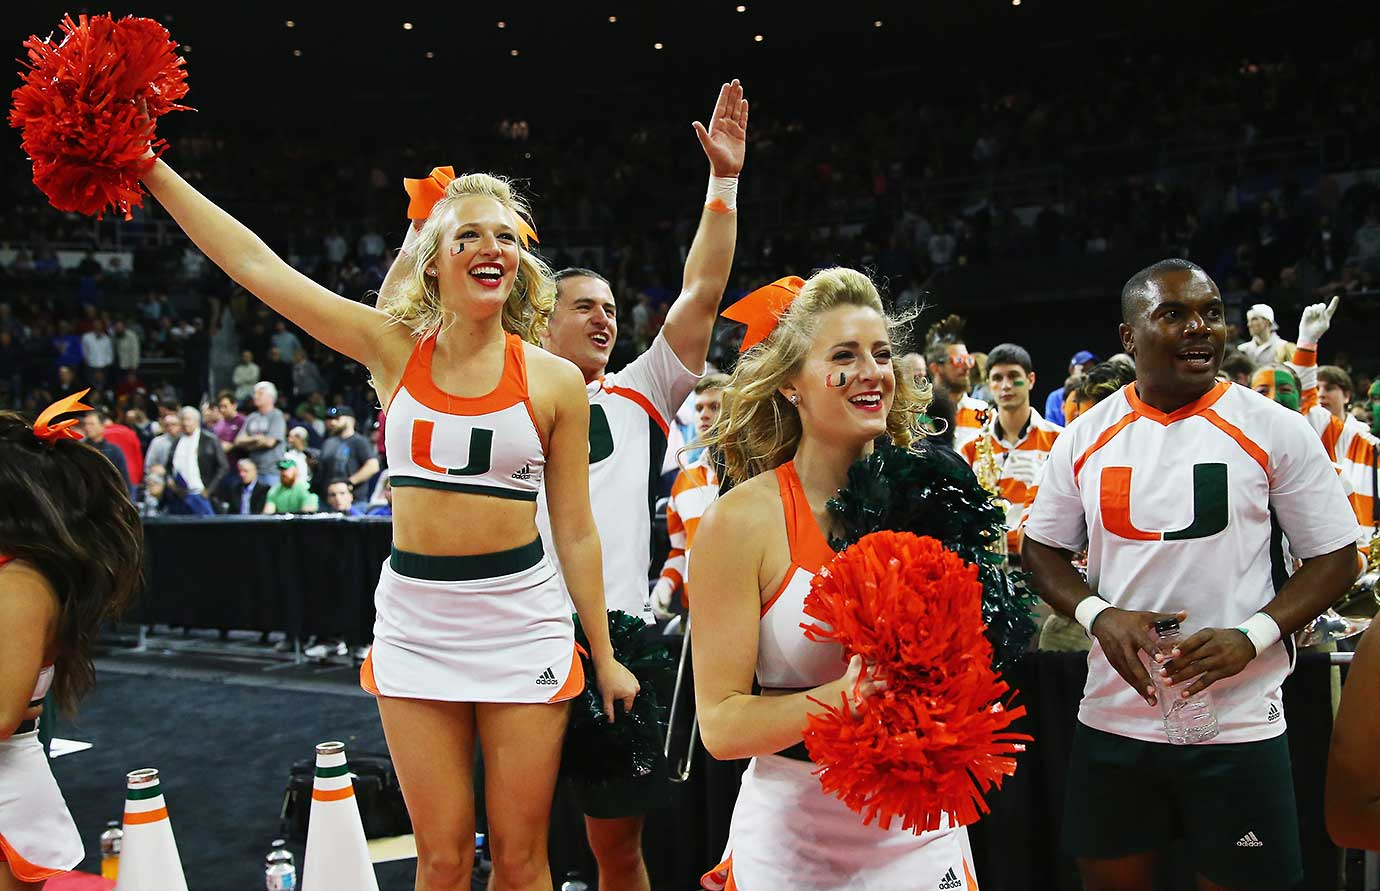 The Miami cheerleaders celebrate after the Hurricanes defeated Wichita State.